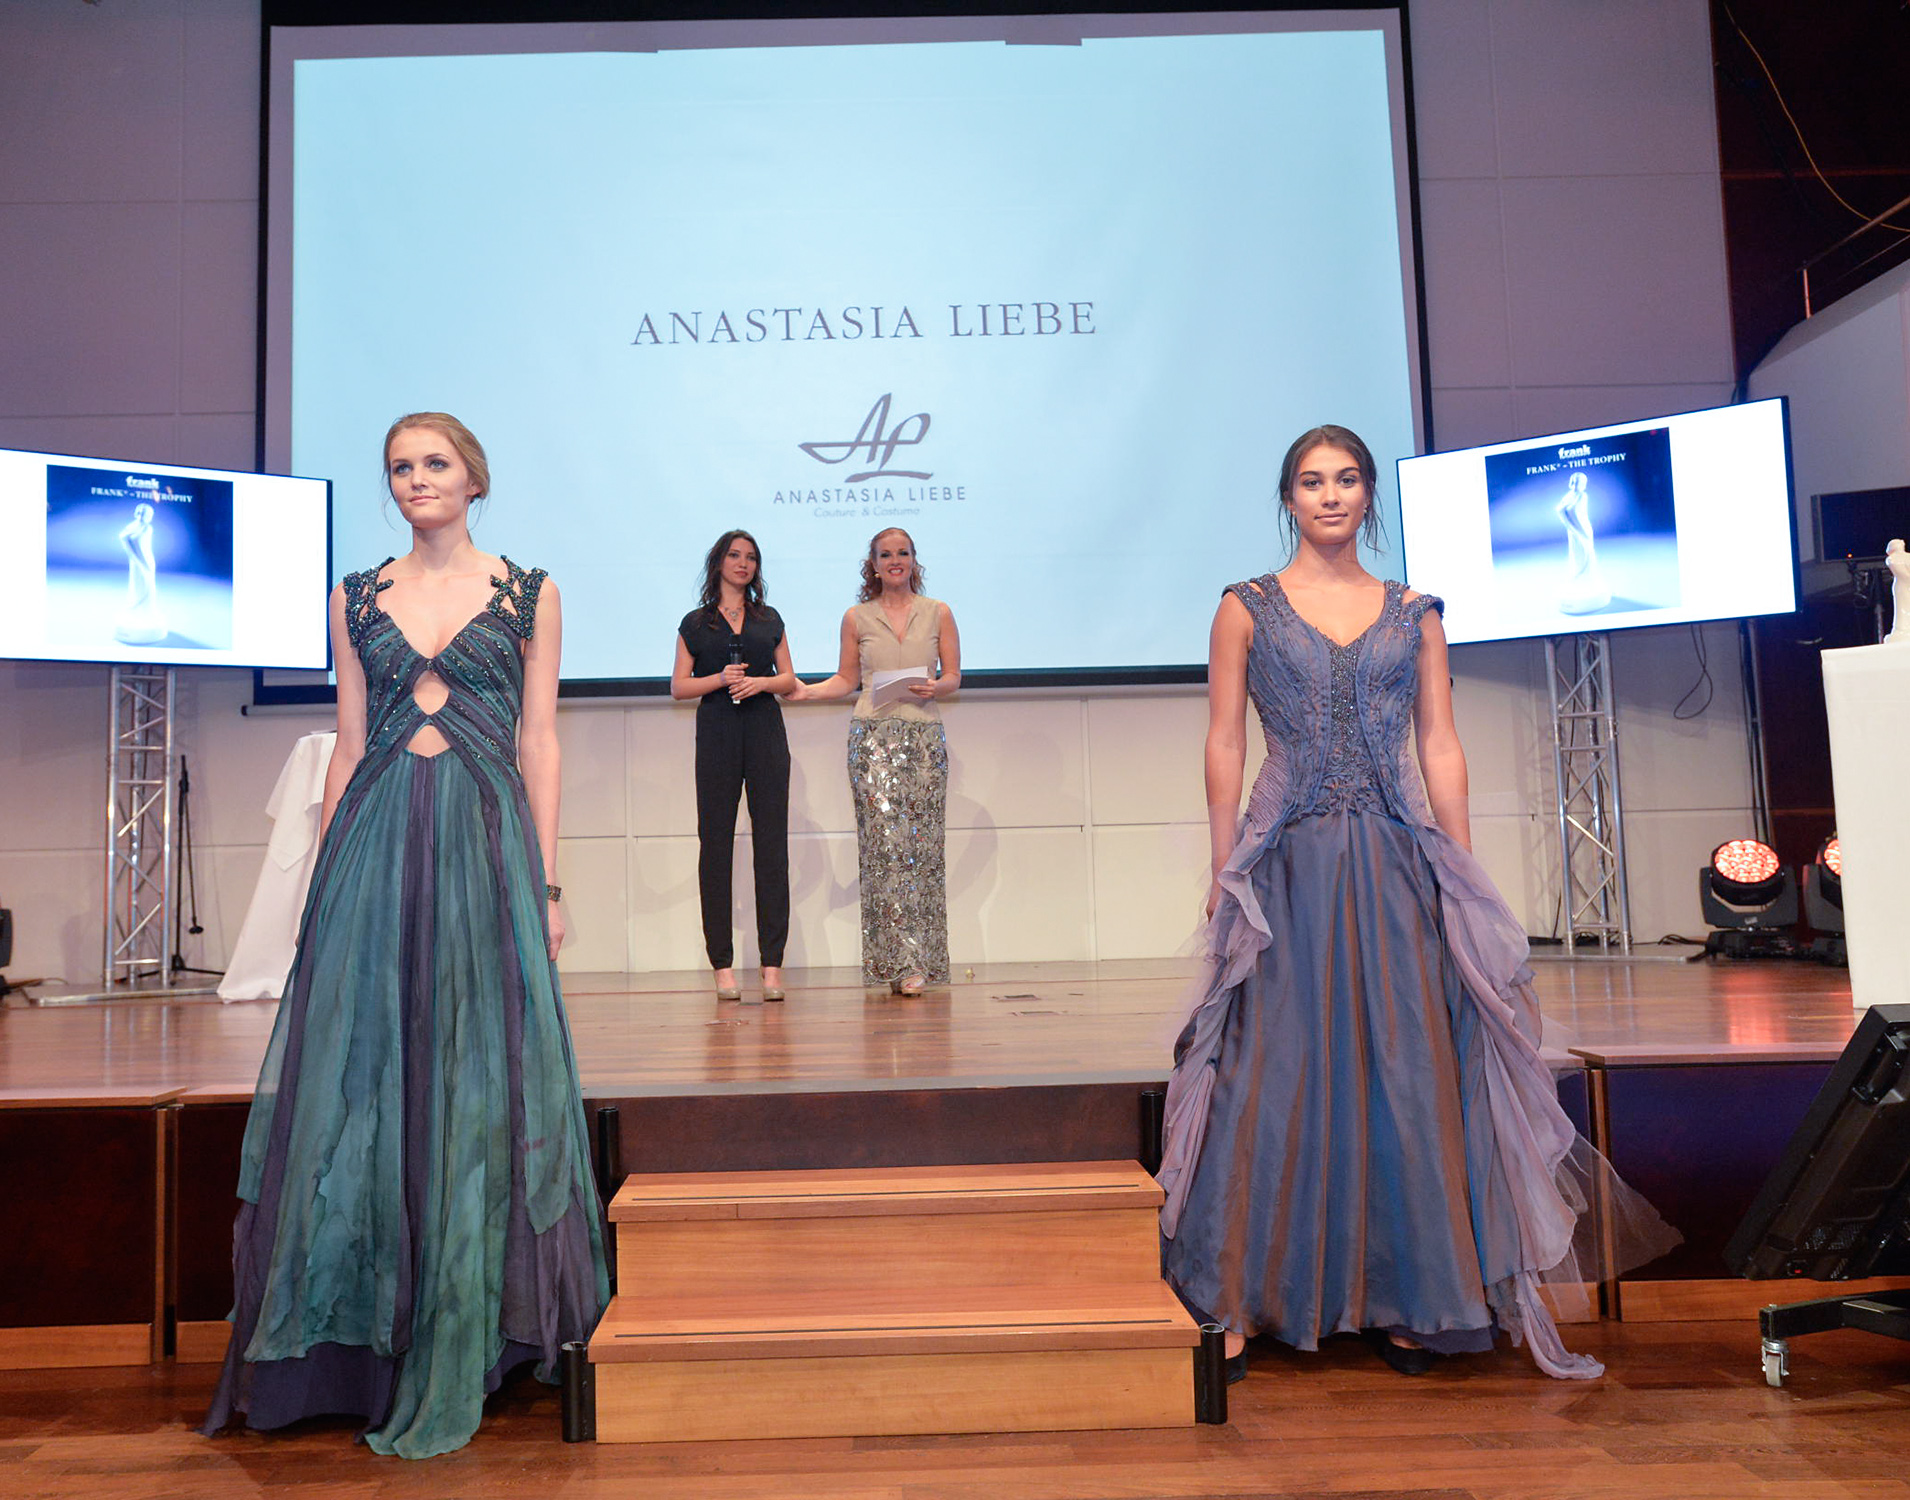 Anastasia Liebe, OUTSTANDING TALENT 2015